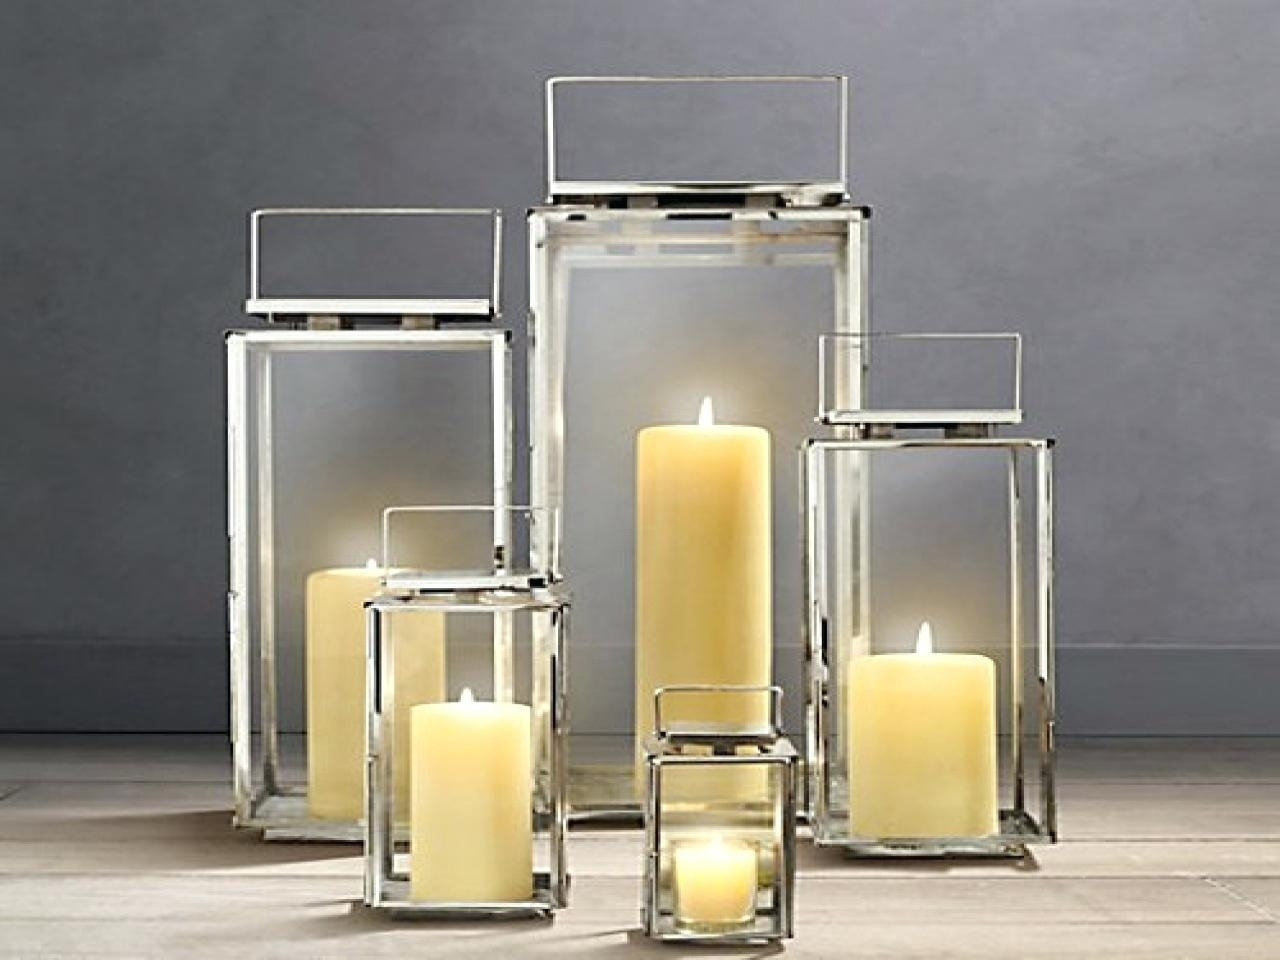 Outdoor Candle Lanterns Wholesale Uk Large For Patio – Wipeoutsgrill intended for Outdoor Candle Lanterns For Patio (Image 18 of 20)